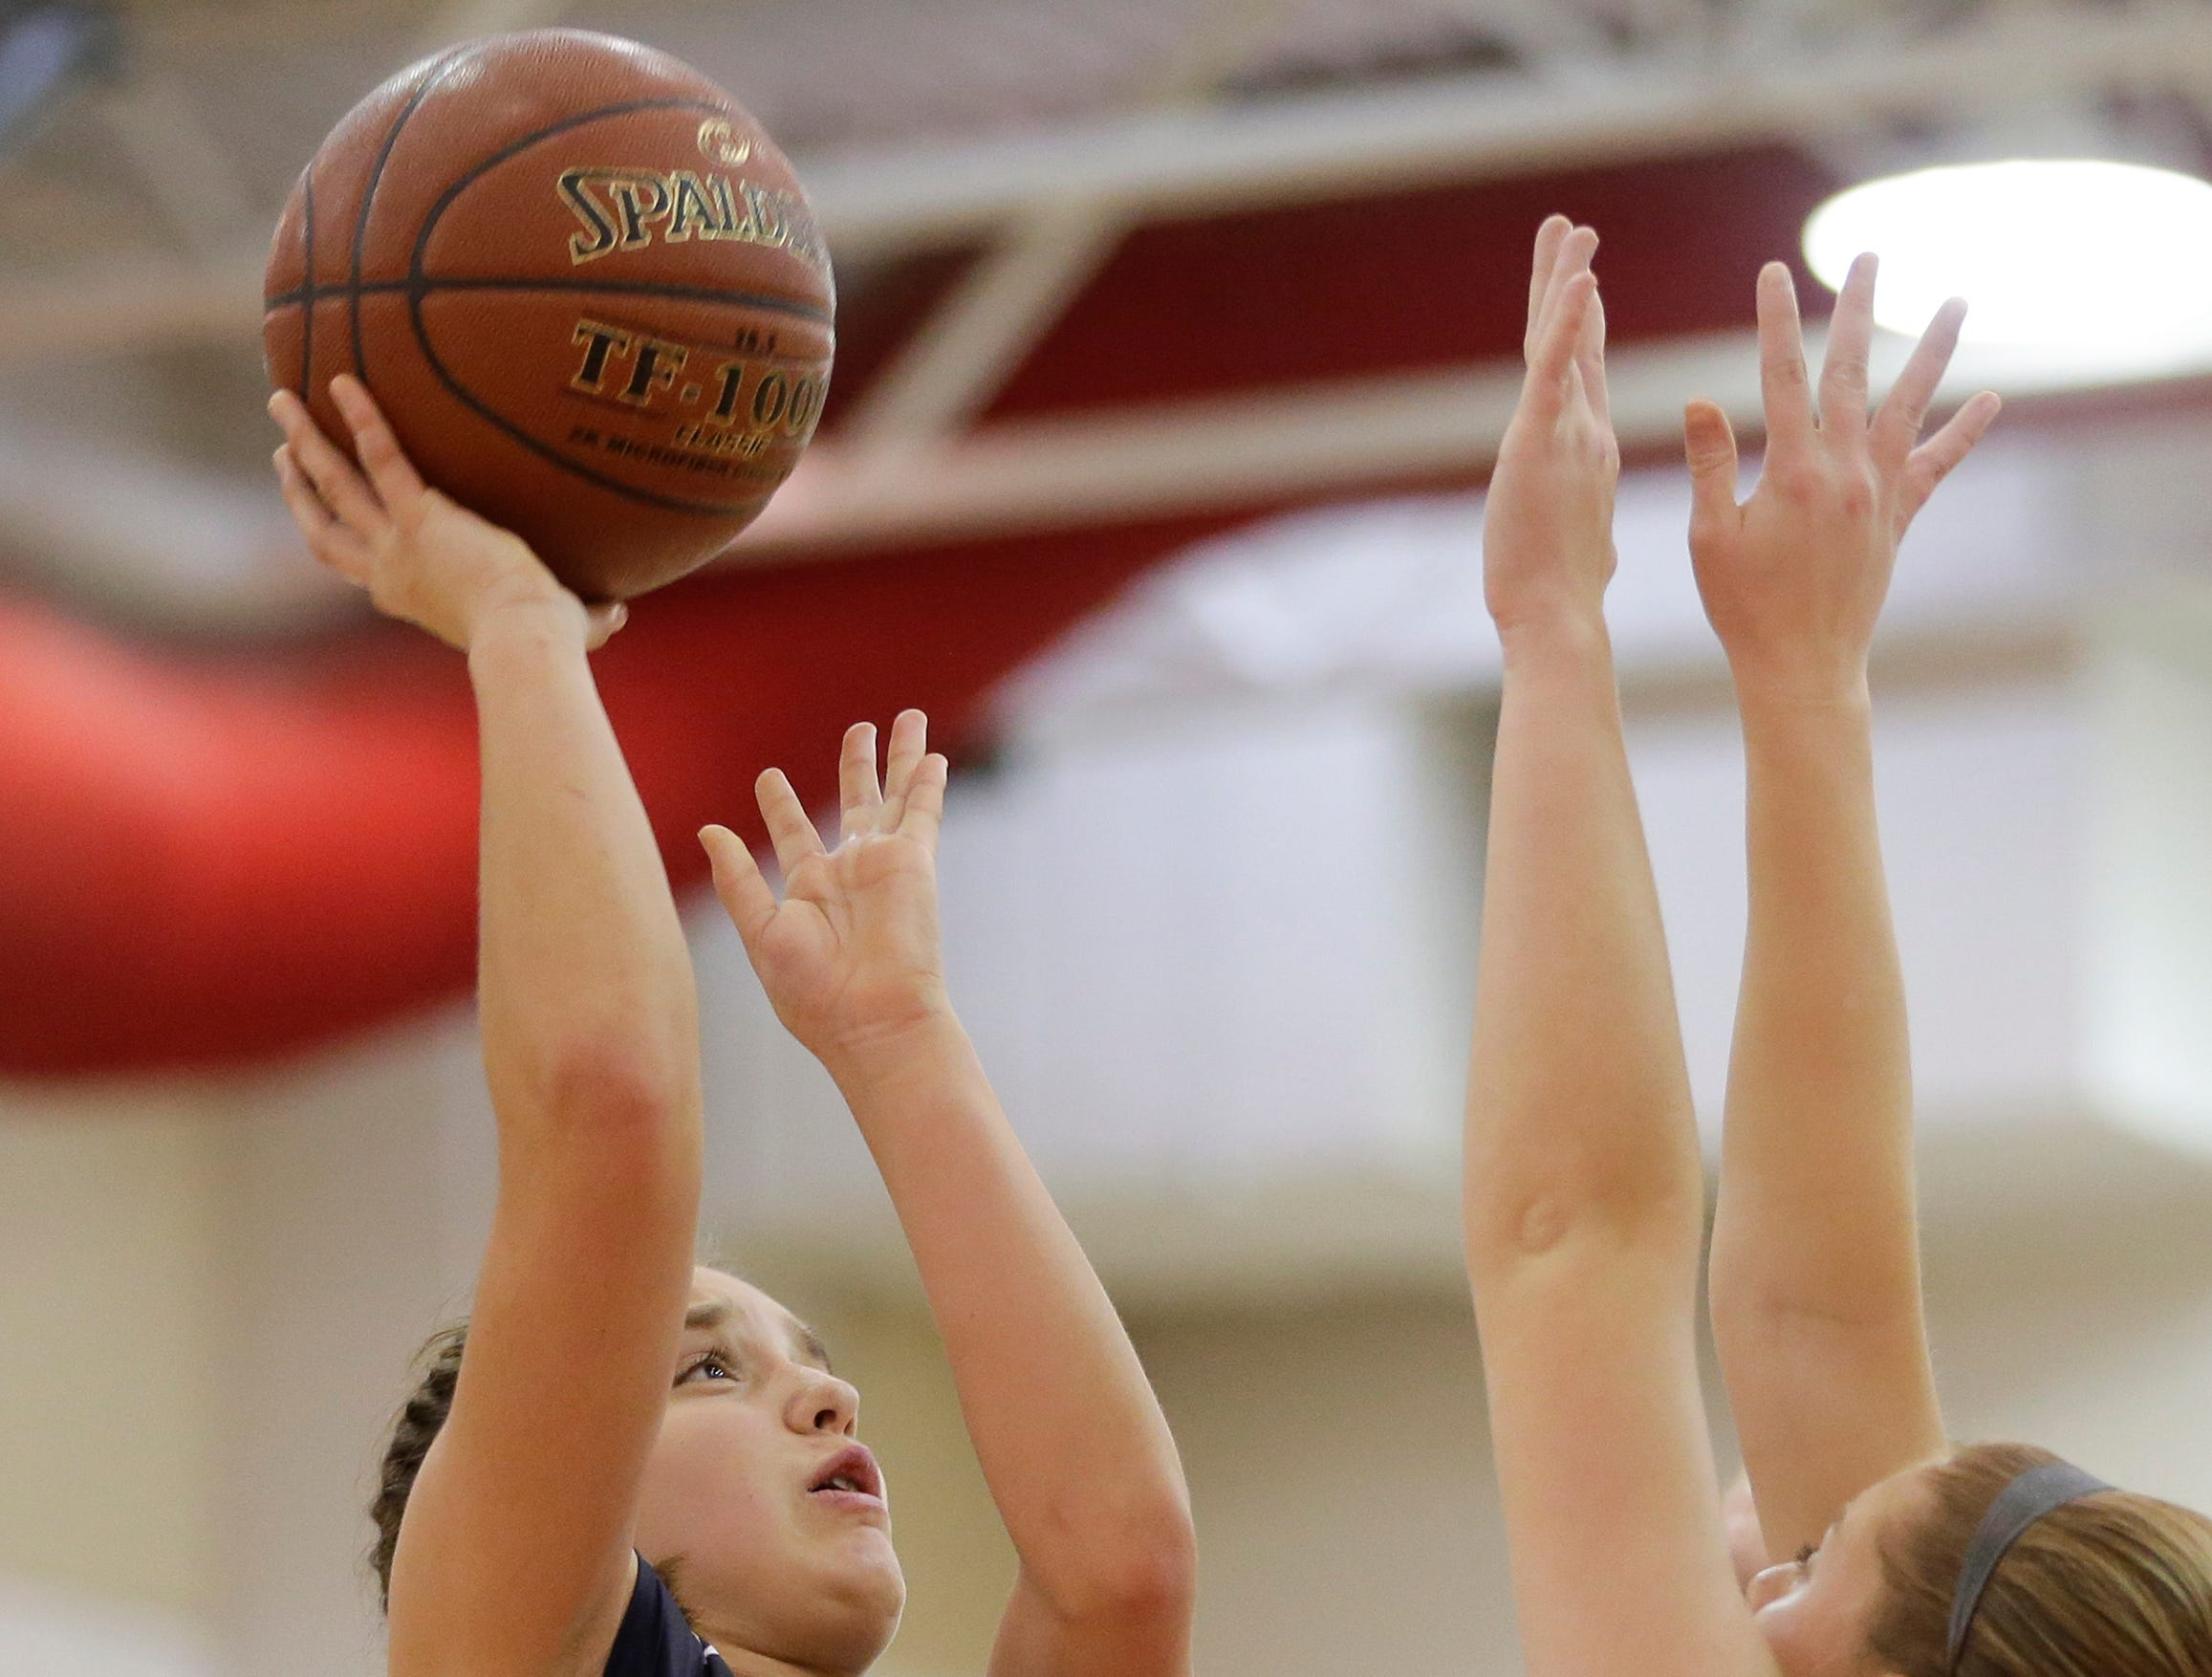 Roncalli's Kaitlyn Freis shoots a layup against Valders in an Eastern Wisconsin Conference game at Valders High School Friday, November 30, 2018, in Valders, Wis. Joshua Clark/USA TODAY NETWORK-Wisconsin